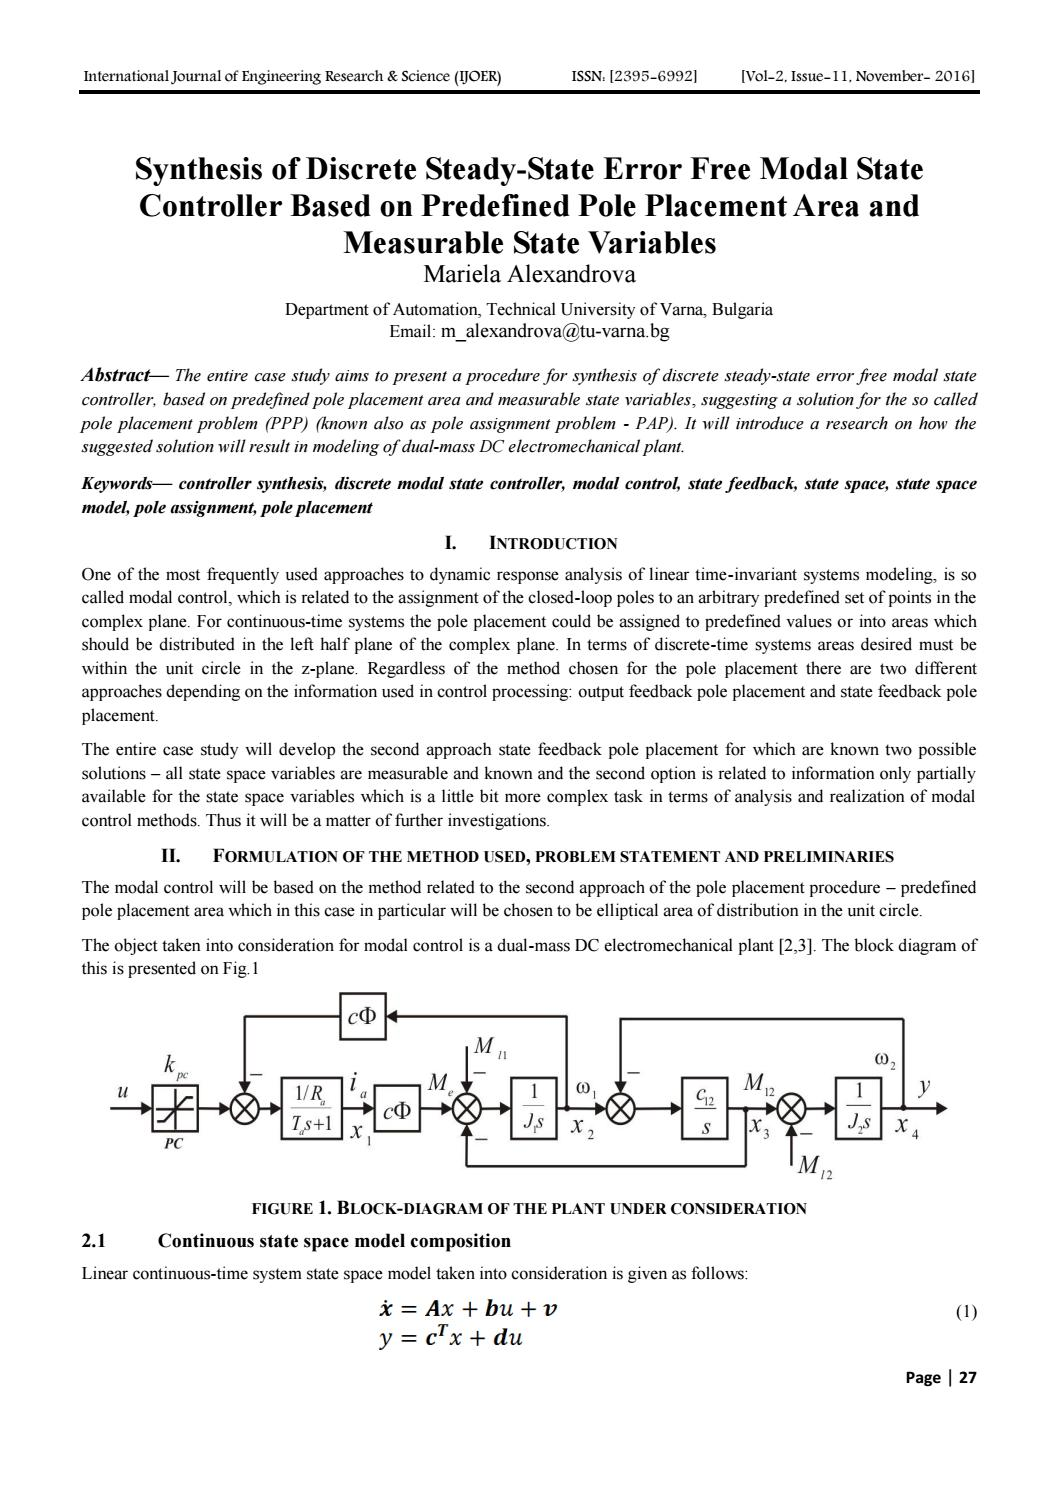 hight resolution of synthesis of discrete steady state error free modal state controller based on predefined pole placem by engineering journal ijoer issuu